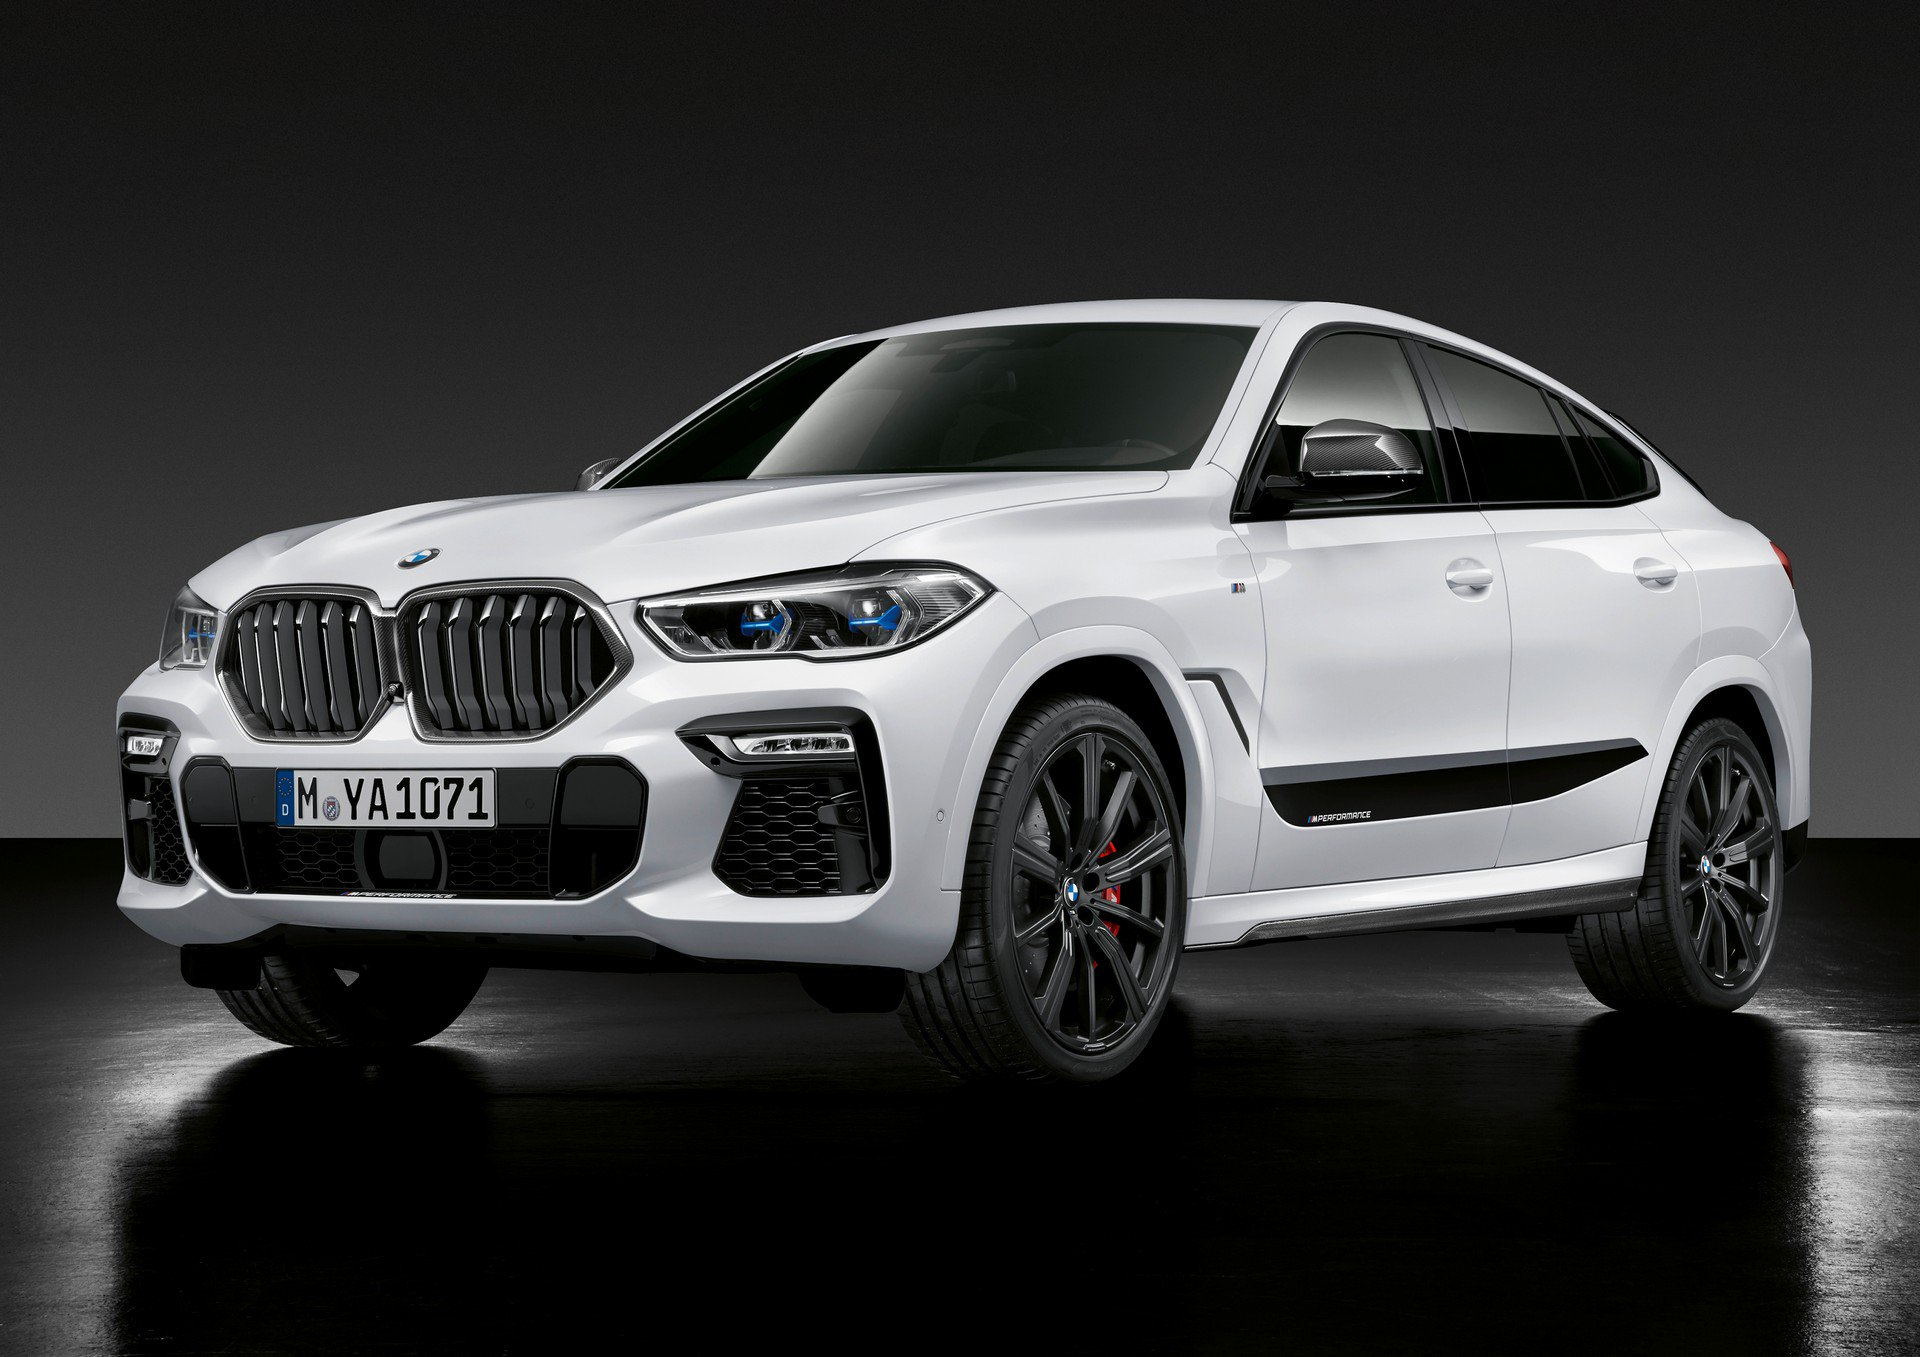 bmw-m-performance-parts-for-x5-x6-m-2.jpg